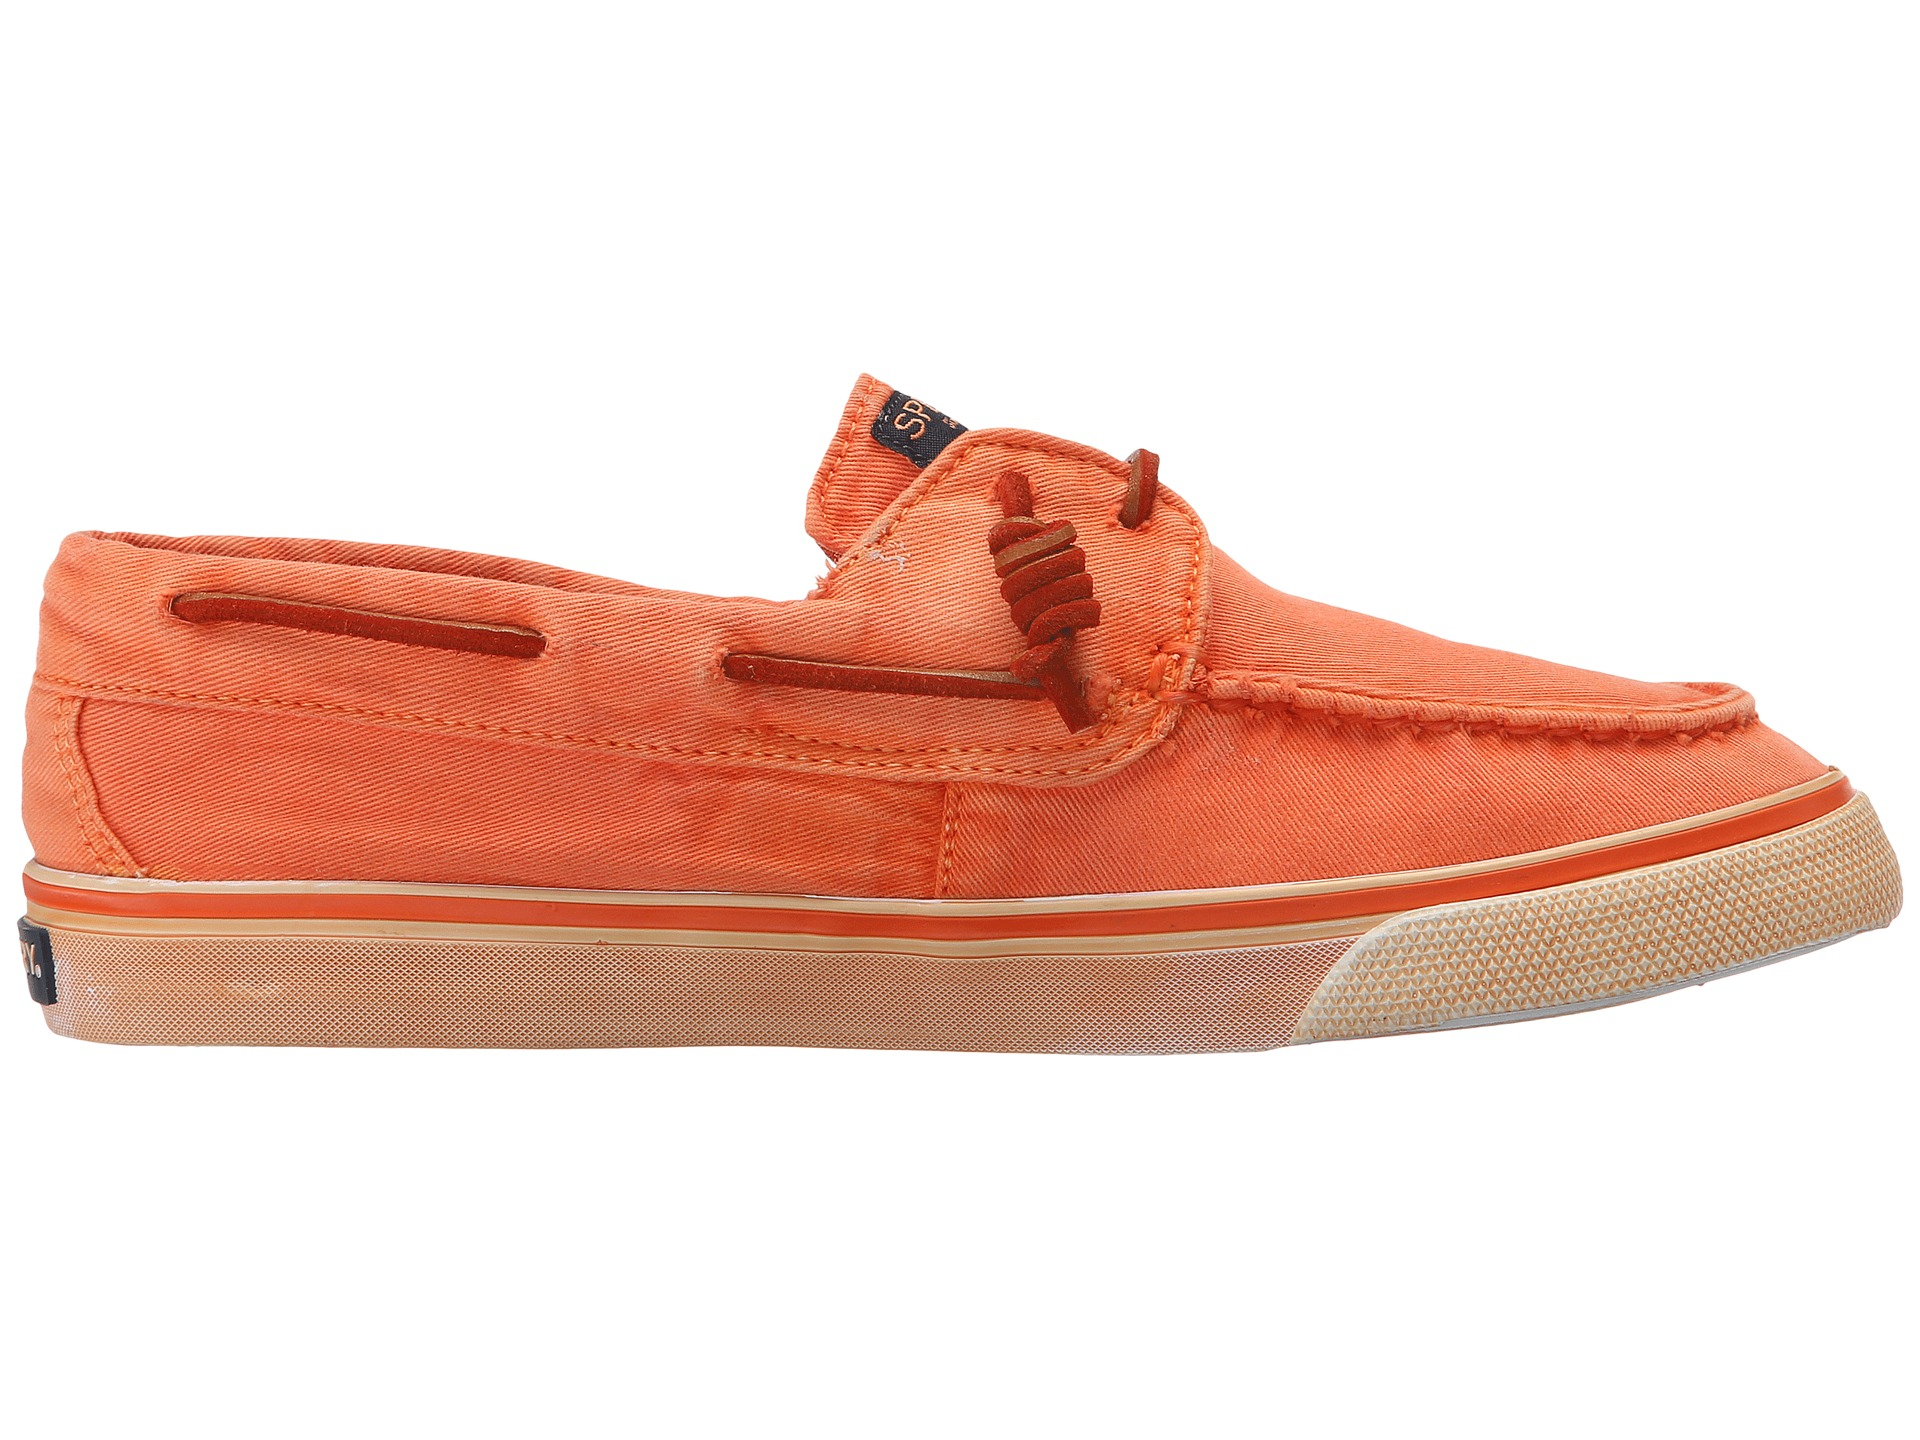 Official site Womens Sperry Top Sider Bahama Washed Boat Shoe Bright Orange Womens Bright Orange Sperry Top Sider Womens Sperry Top Sider